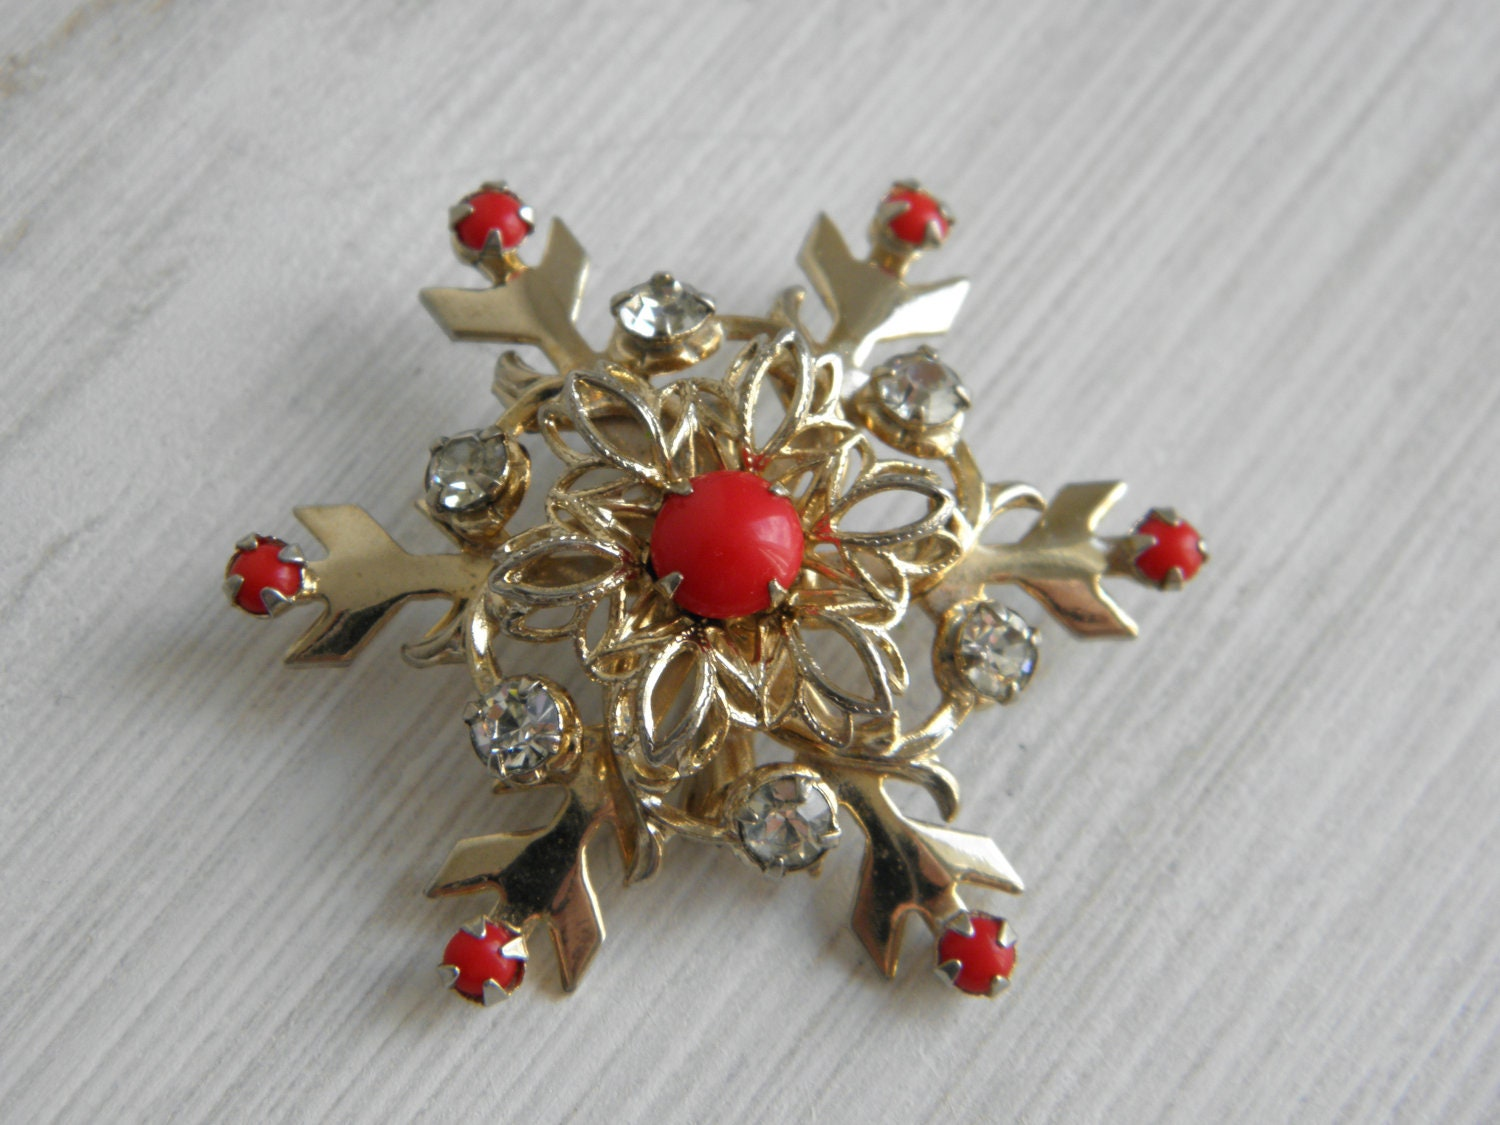 Snowflake Christmas Brooch Rhinestone Red Pin Vintage Black Friday Cyber Monday - VisualizingVintage